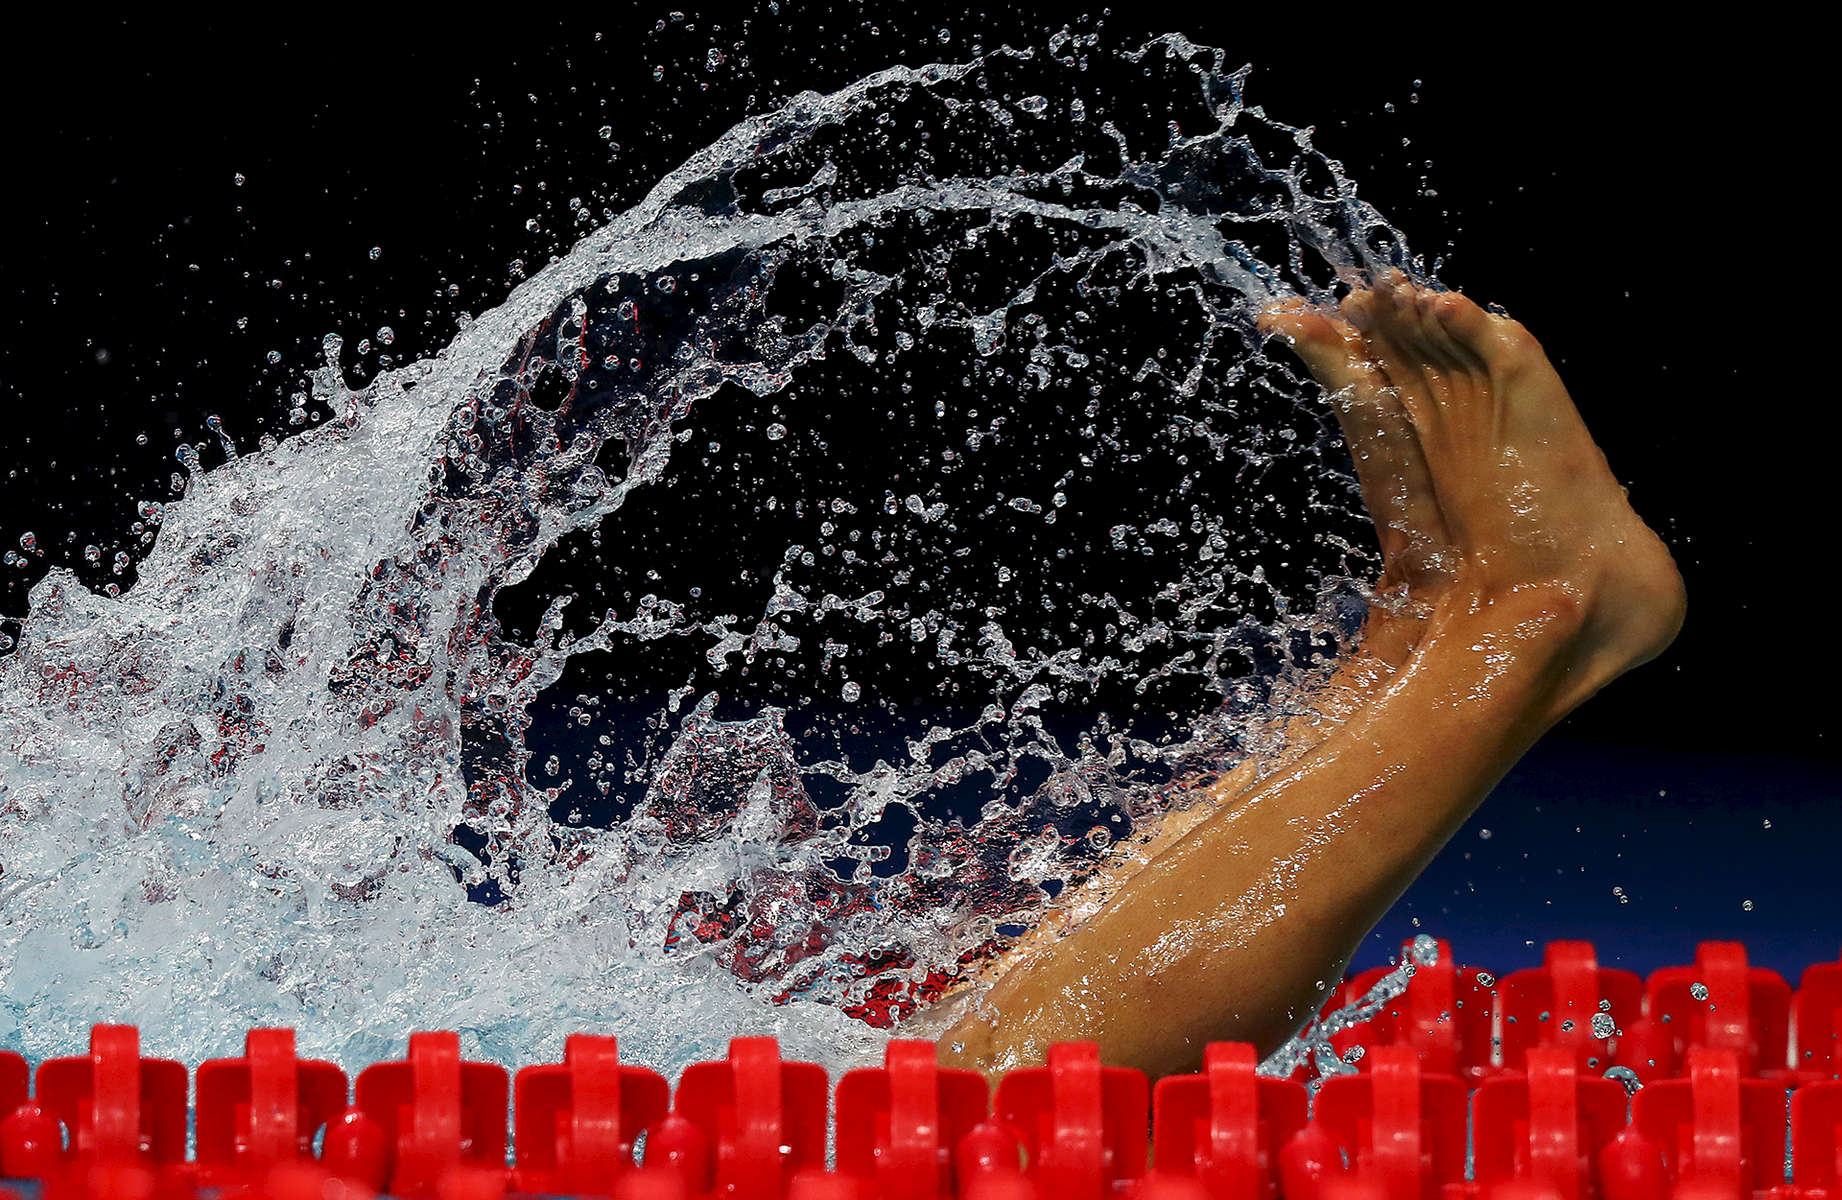 An athlete competes during the Men's 1500m Freestyle heats on day sixteen of the Budapest 2017 FINA World Championships on July 29, 2017 in Budapest, Hungary.